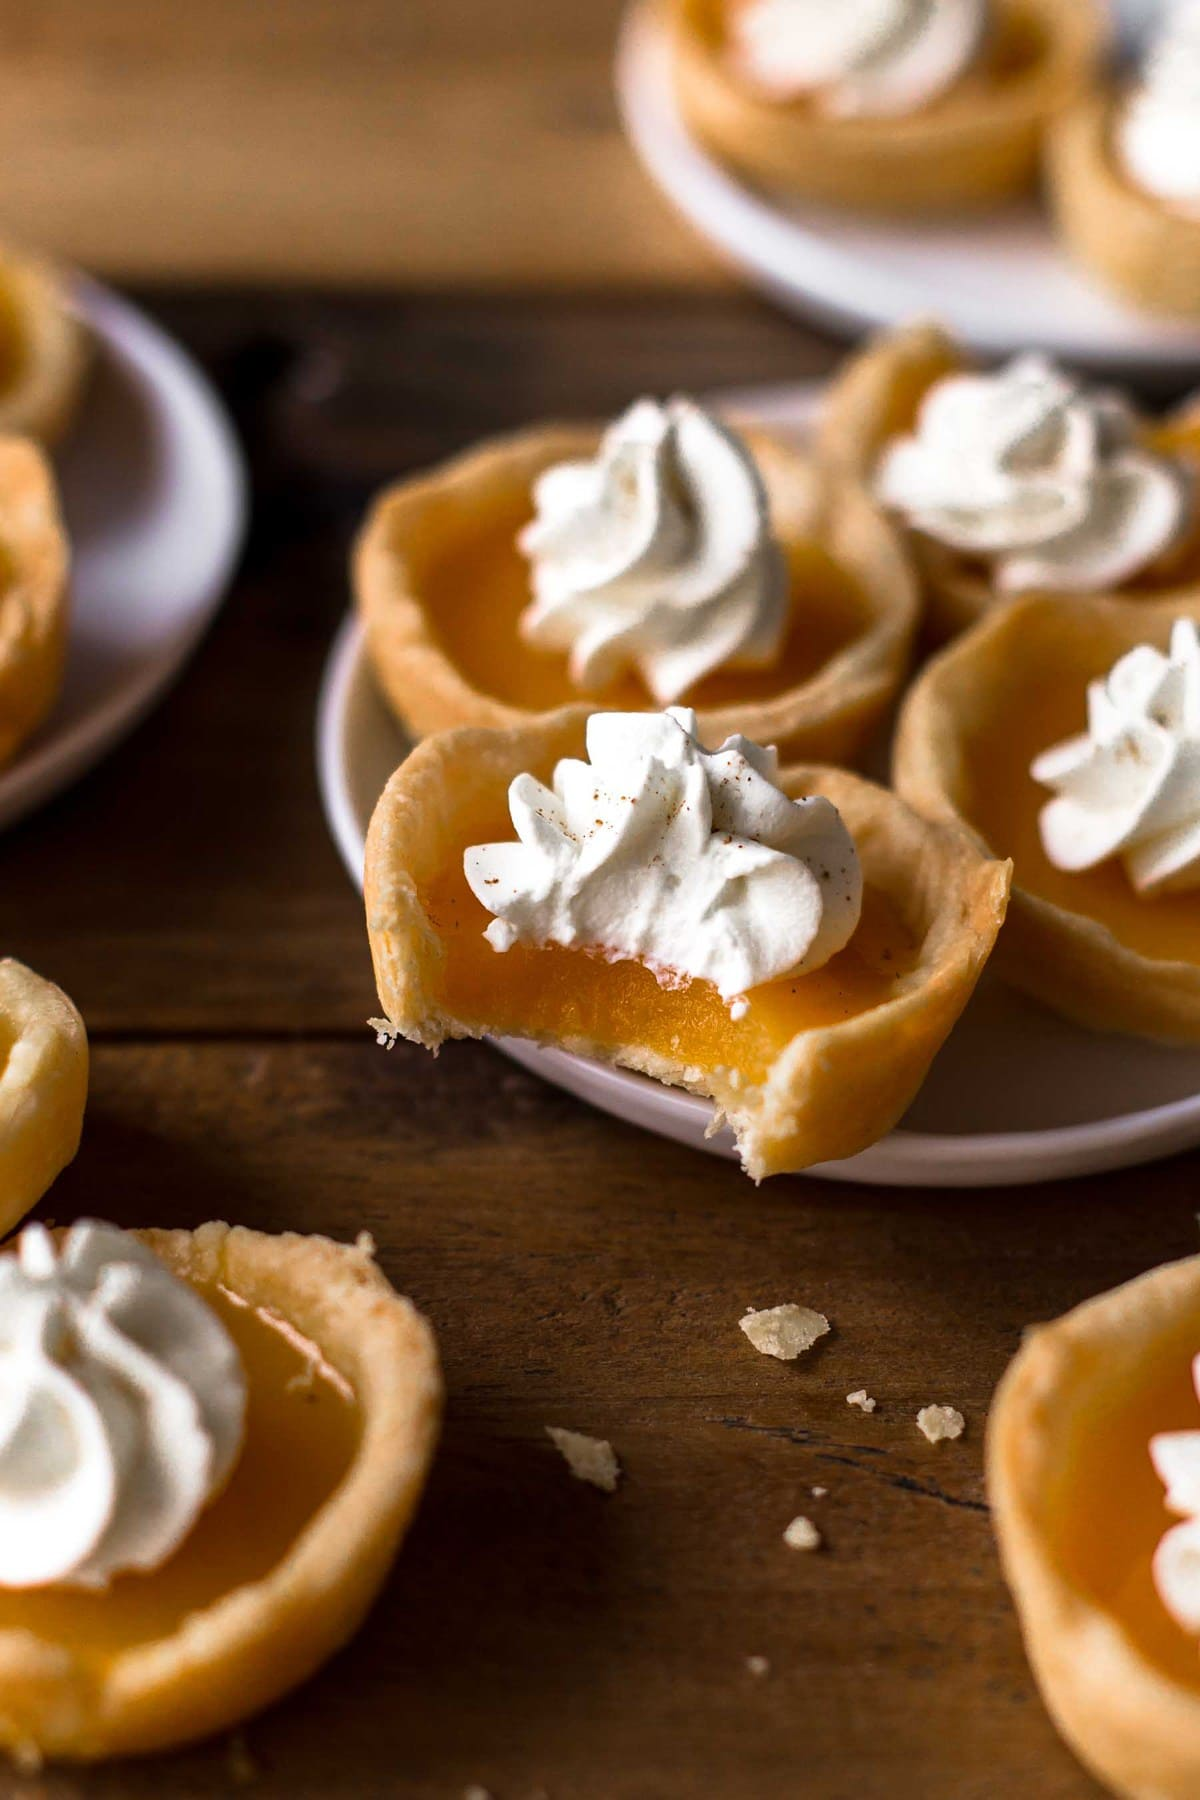 mini pumpkin pie shots on plates, one has a bite taken out of it